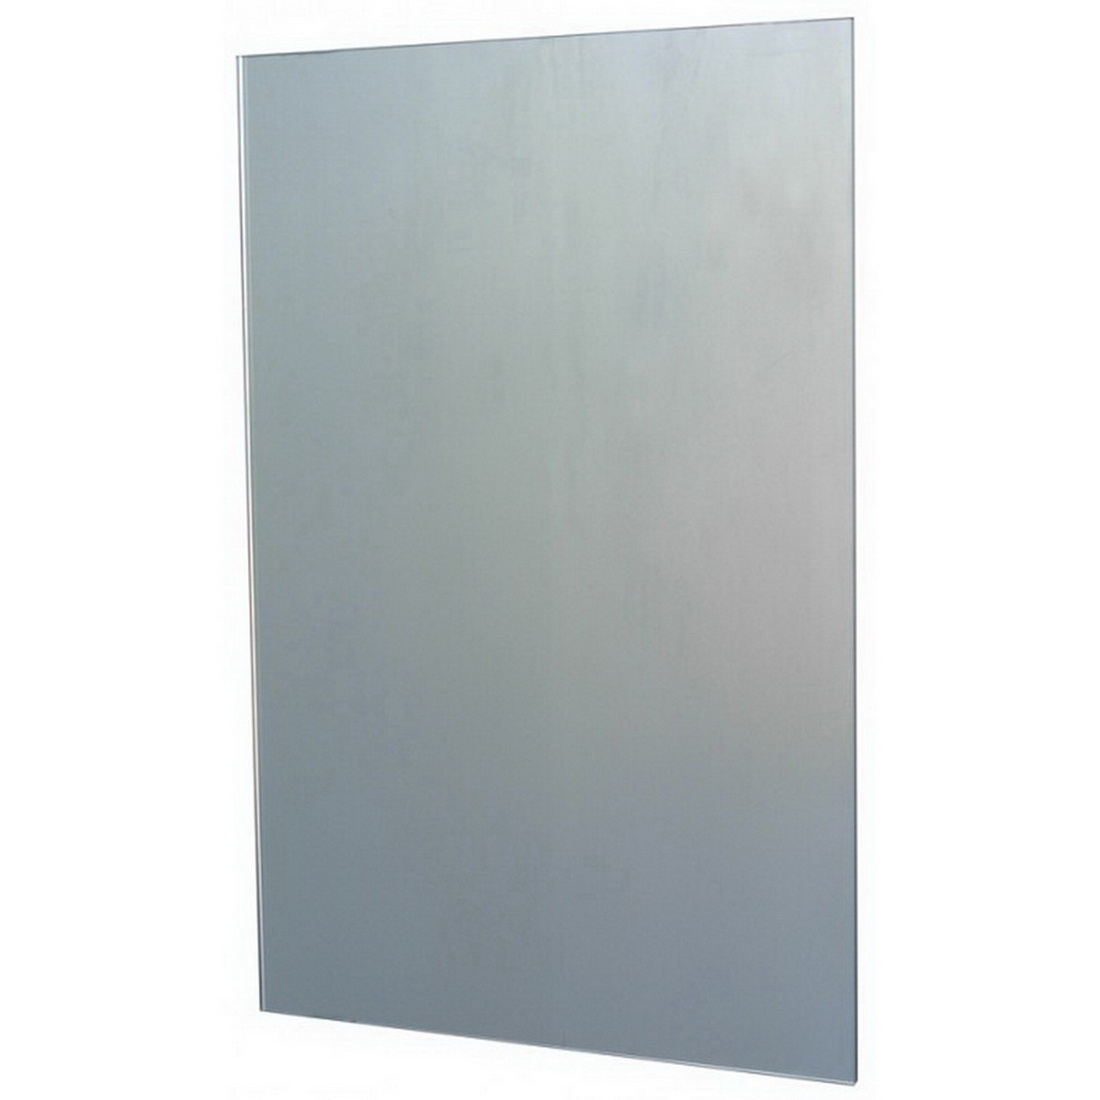 Styline Polished Edge Mirror with Hidden Fittings 1200 x 900mm 12X9STYLE